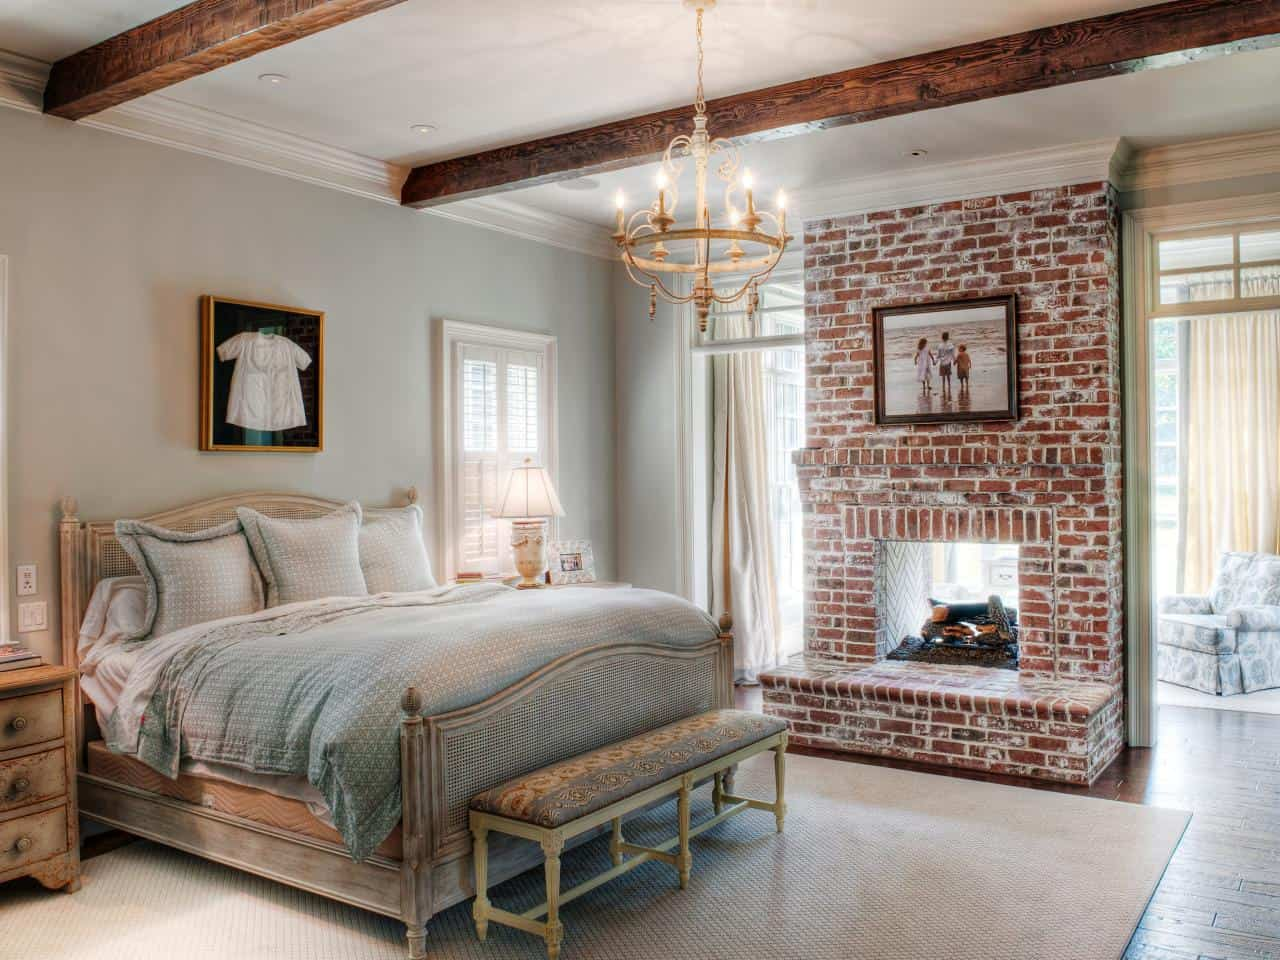 A brick fireplace works perfectly in a bedroom because it adds an extra touch of warmth in the room in the most subtle way.